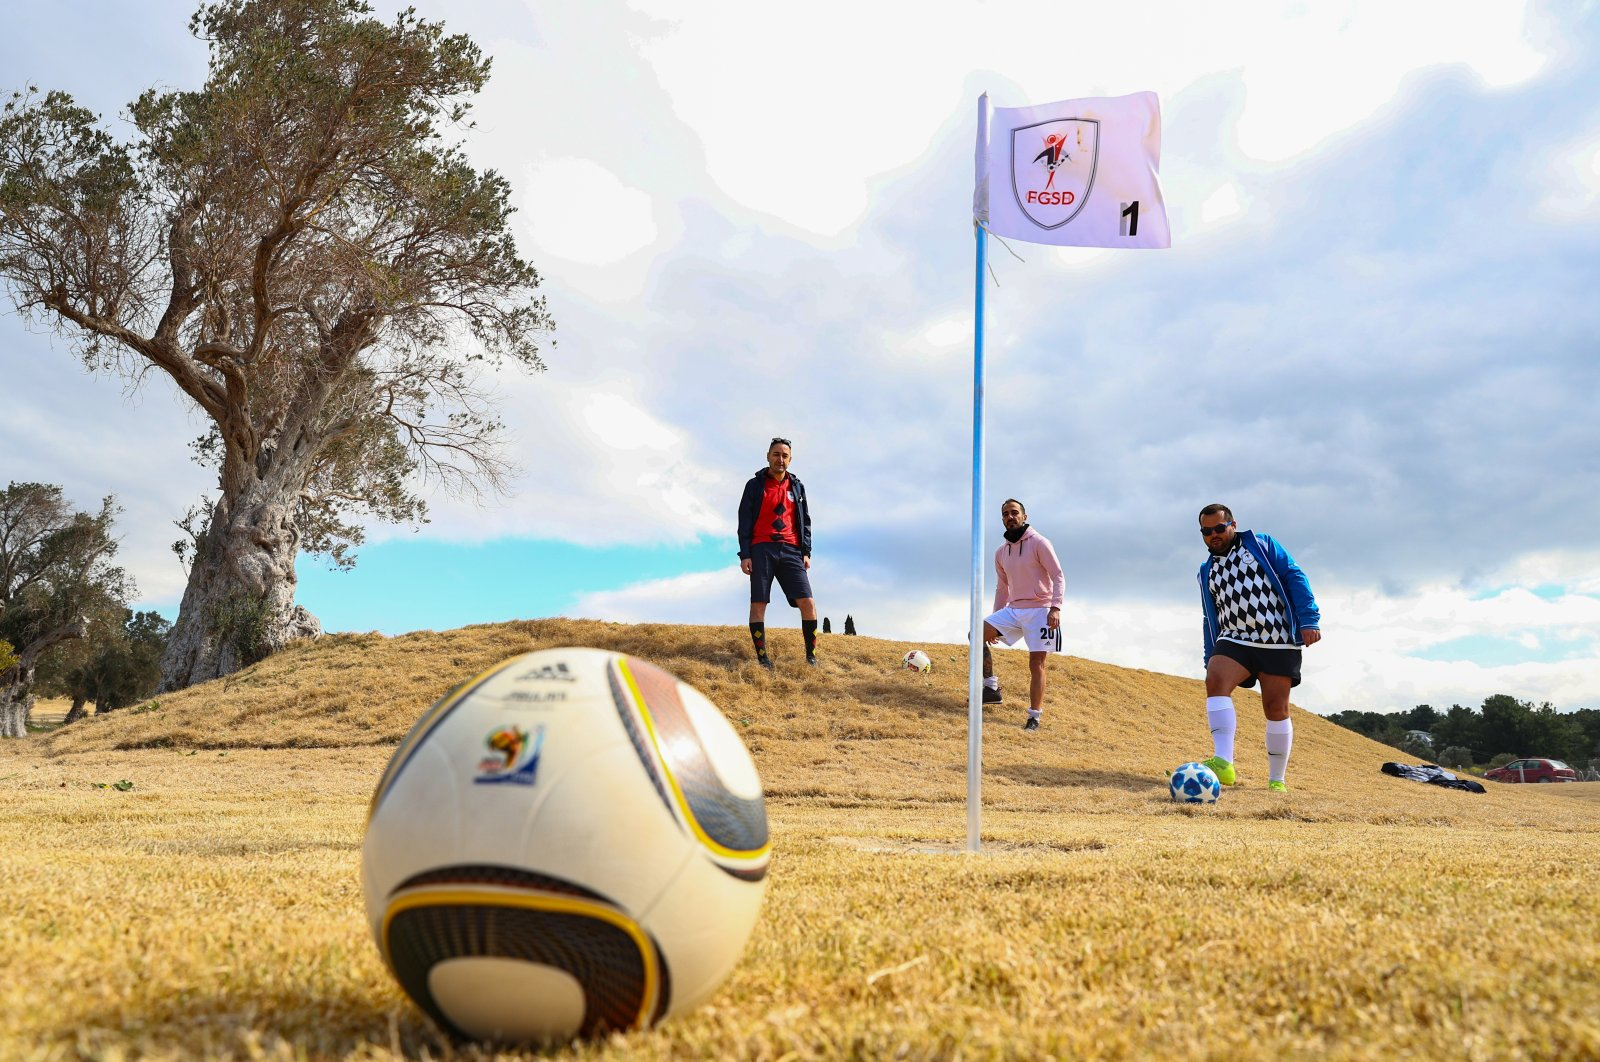 Footgolf players stand near a footgolf hole in Urla district, Izmir province, western Turkey, March 10, 2021. (AA Photo)